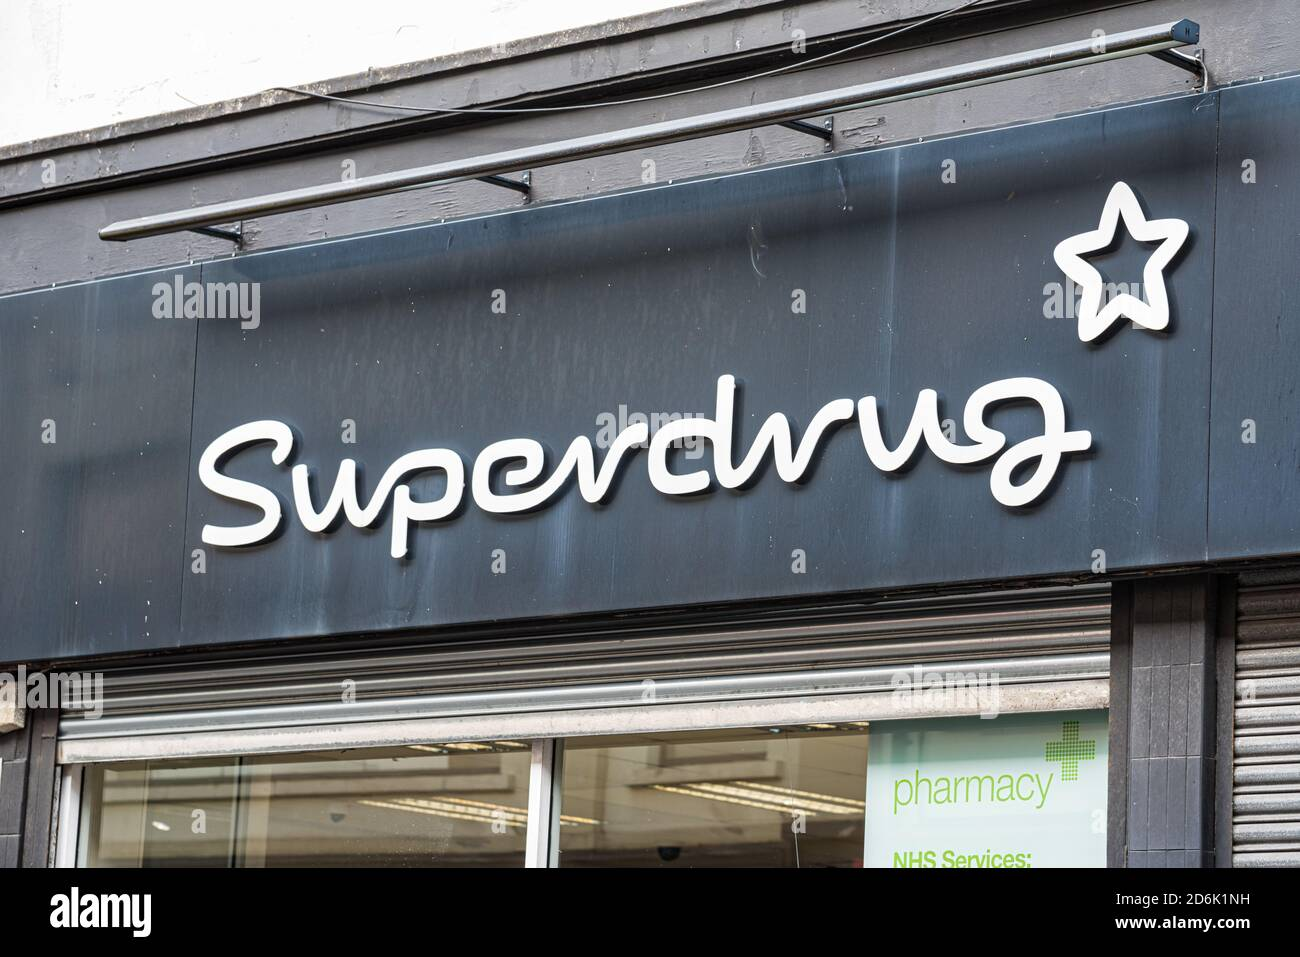 Derry, Northern Ireland- Sept 27, 2020: The sign for Superdrug in Derry. Stock Photo